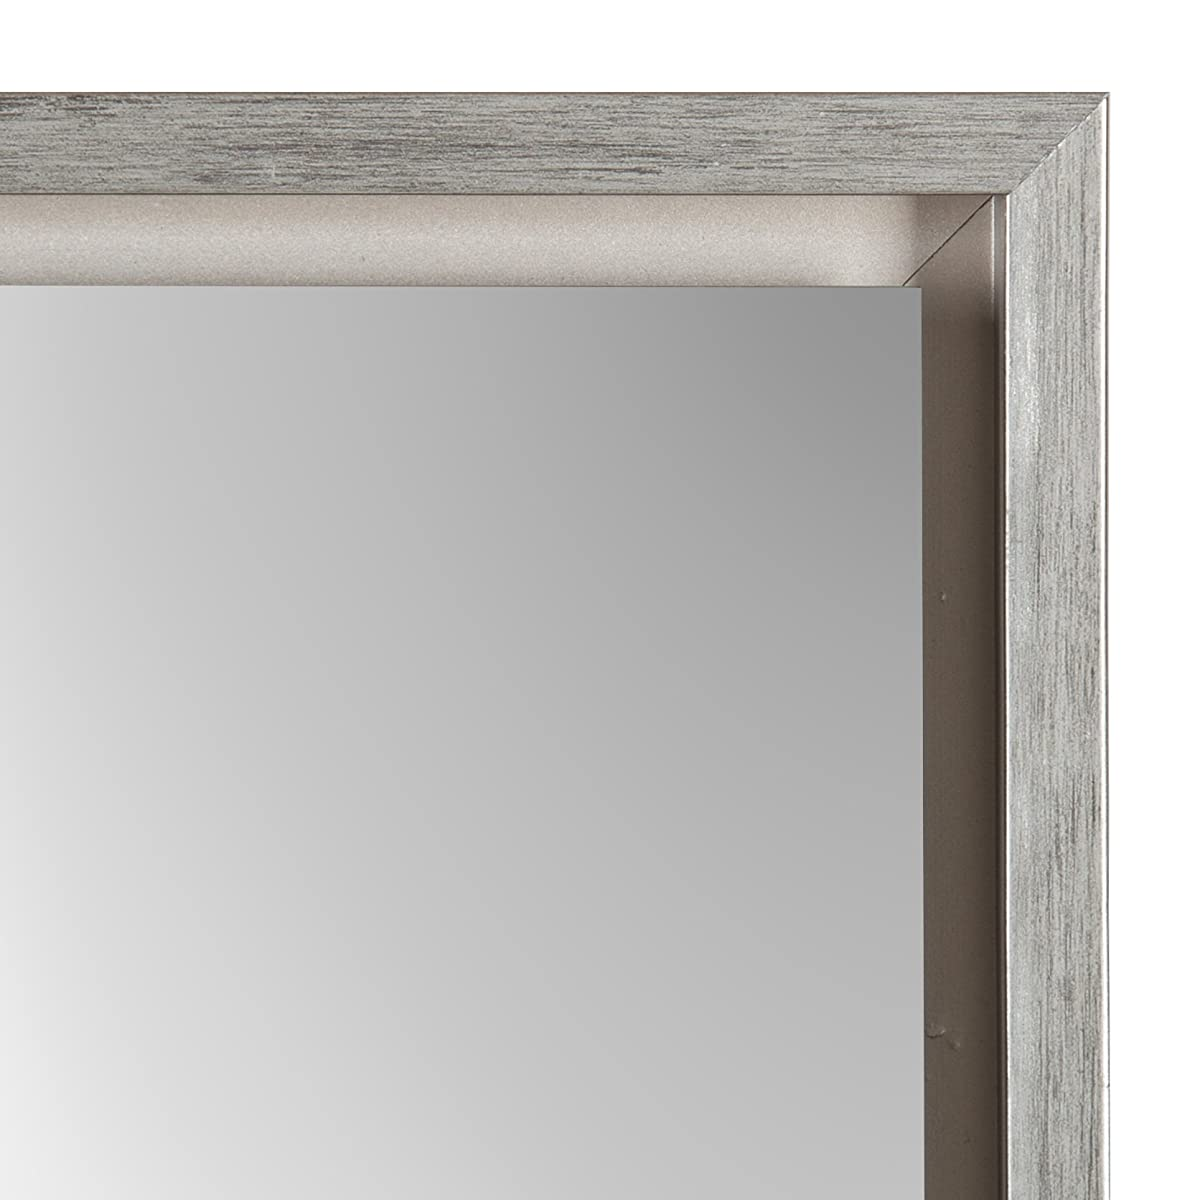 Kate and Laurel Evans Wood Framed Free Standing Mirror with Easel, Silver